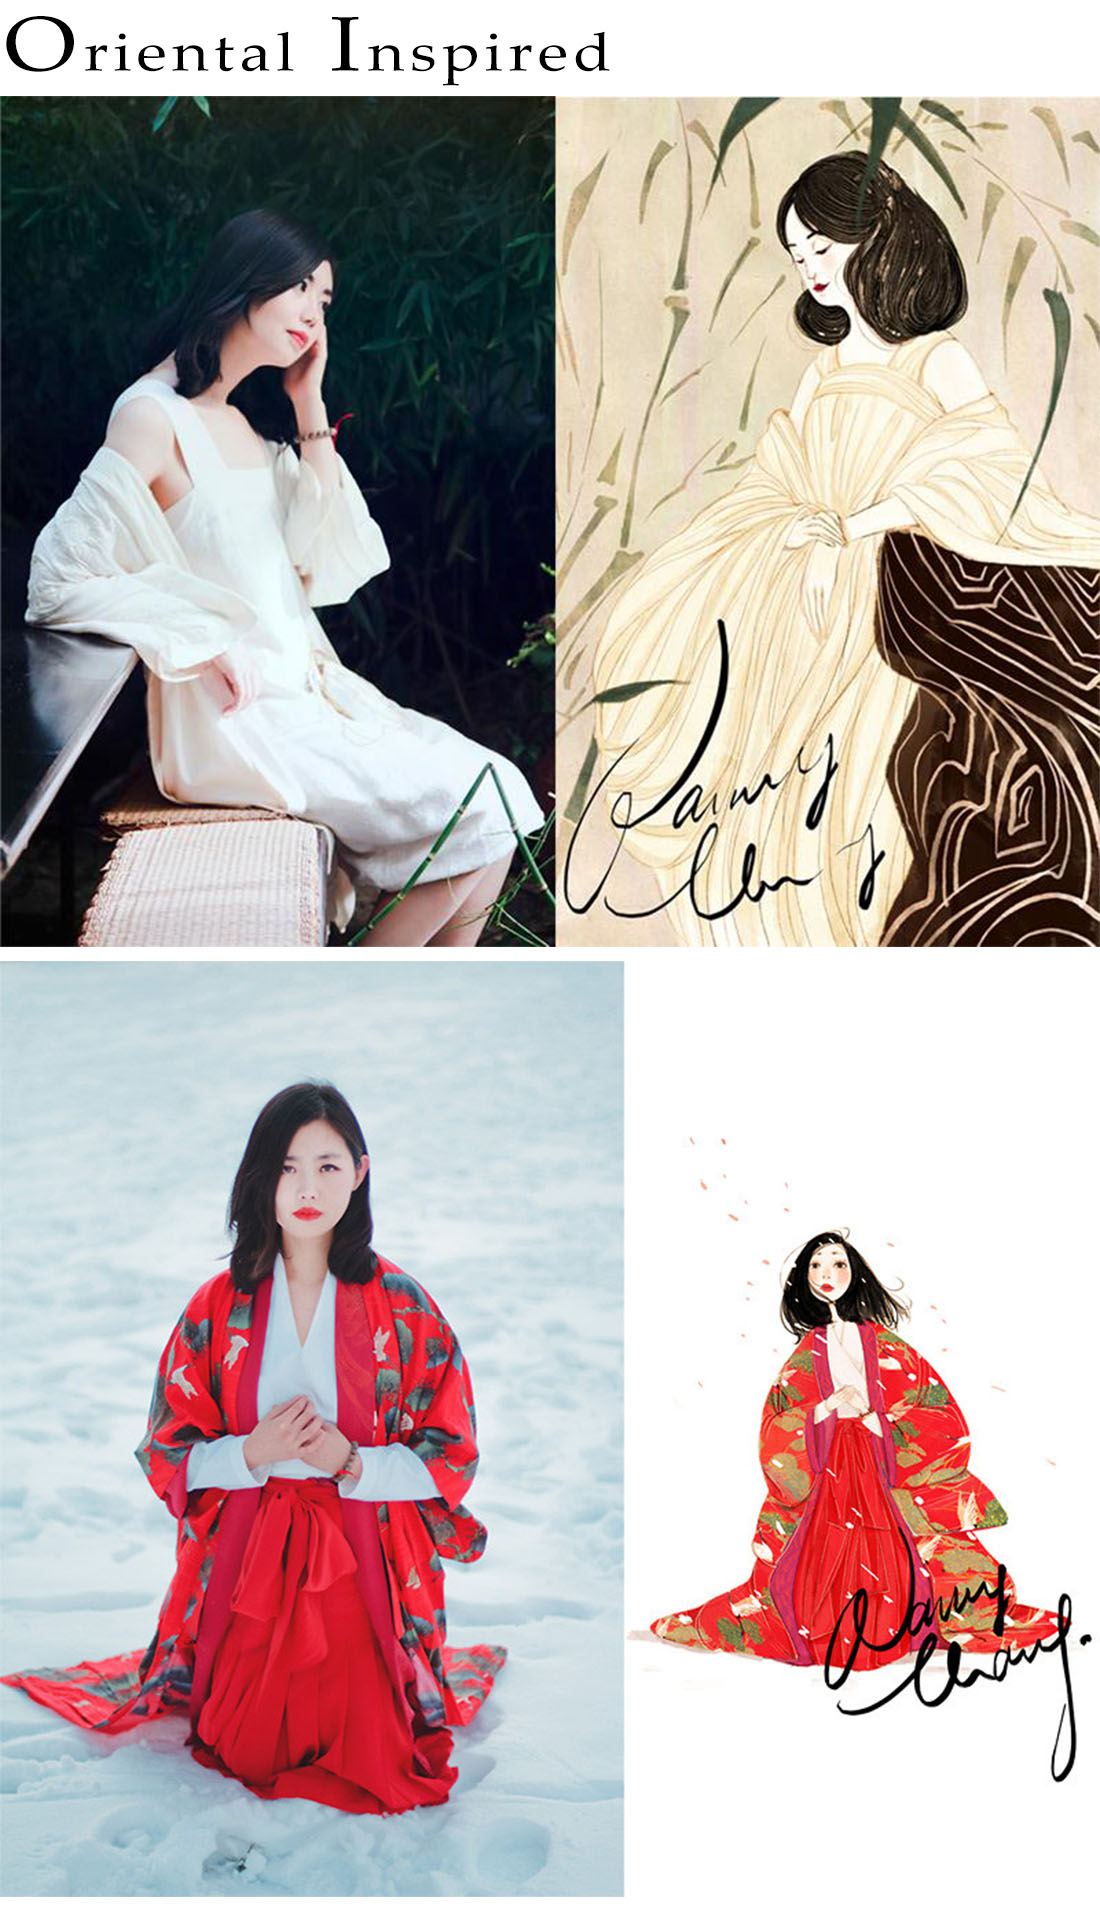 Fashion_Illustrations_Com_Oriental_01